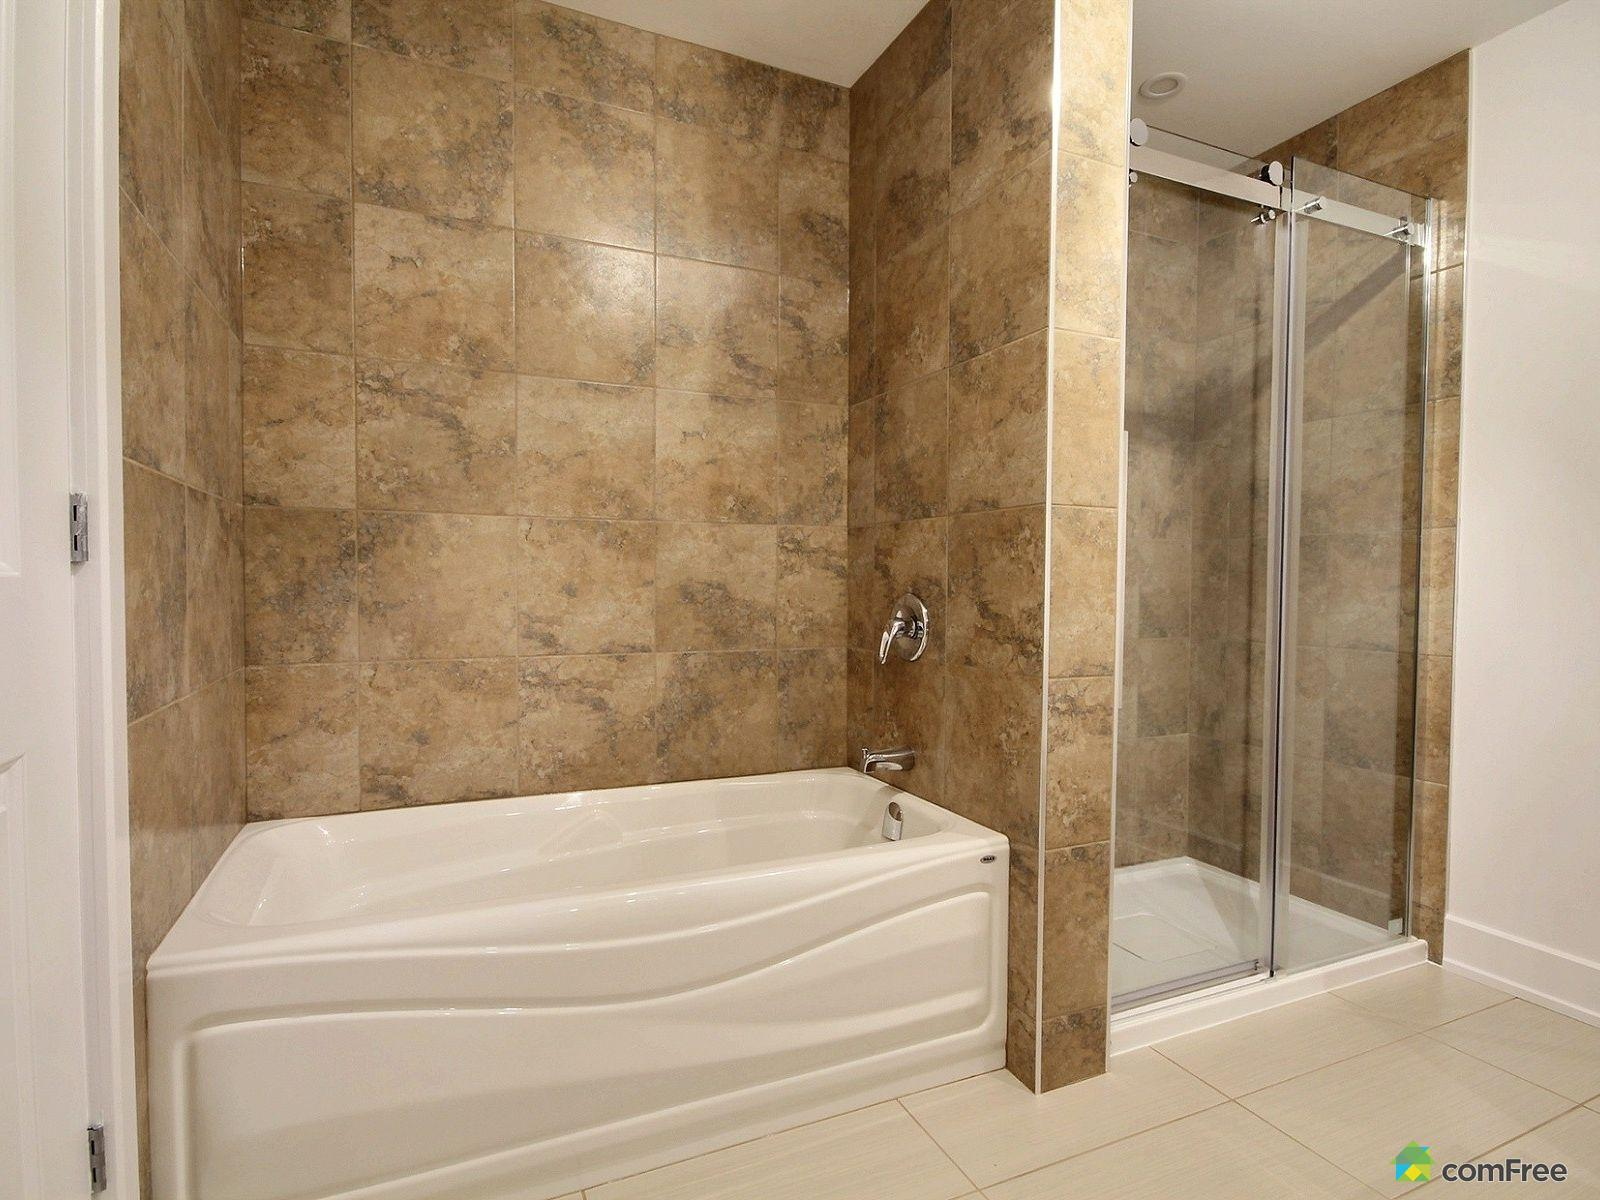 bathroom-new-home-for-sale-rockland-ontario-1600-6589207.jpg